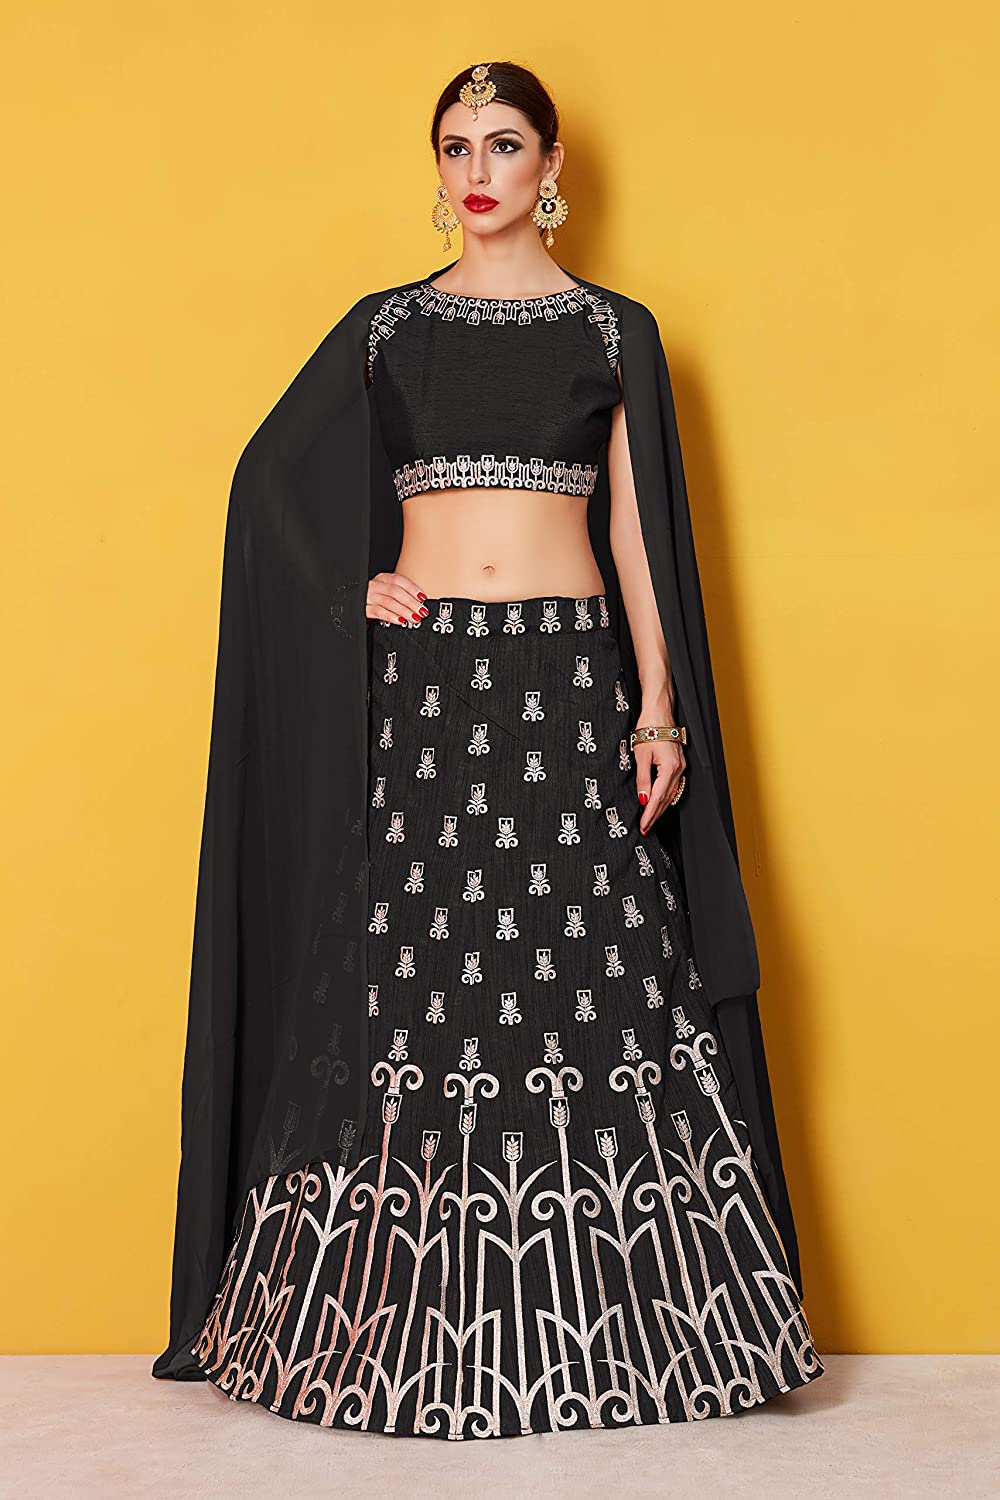 447e0a3598 SK Clothing Bridal Collection Black Art Silk Lehenga Choli With Georgette  Dupatta for women(AD513, Free size, Black): Amazon.in: Clothing &  Accessories